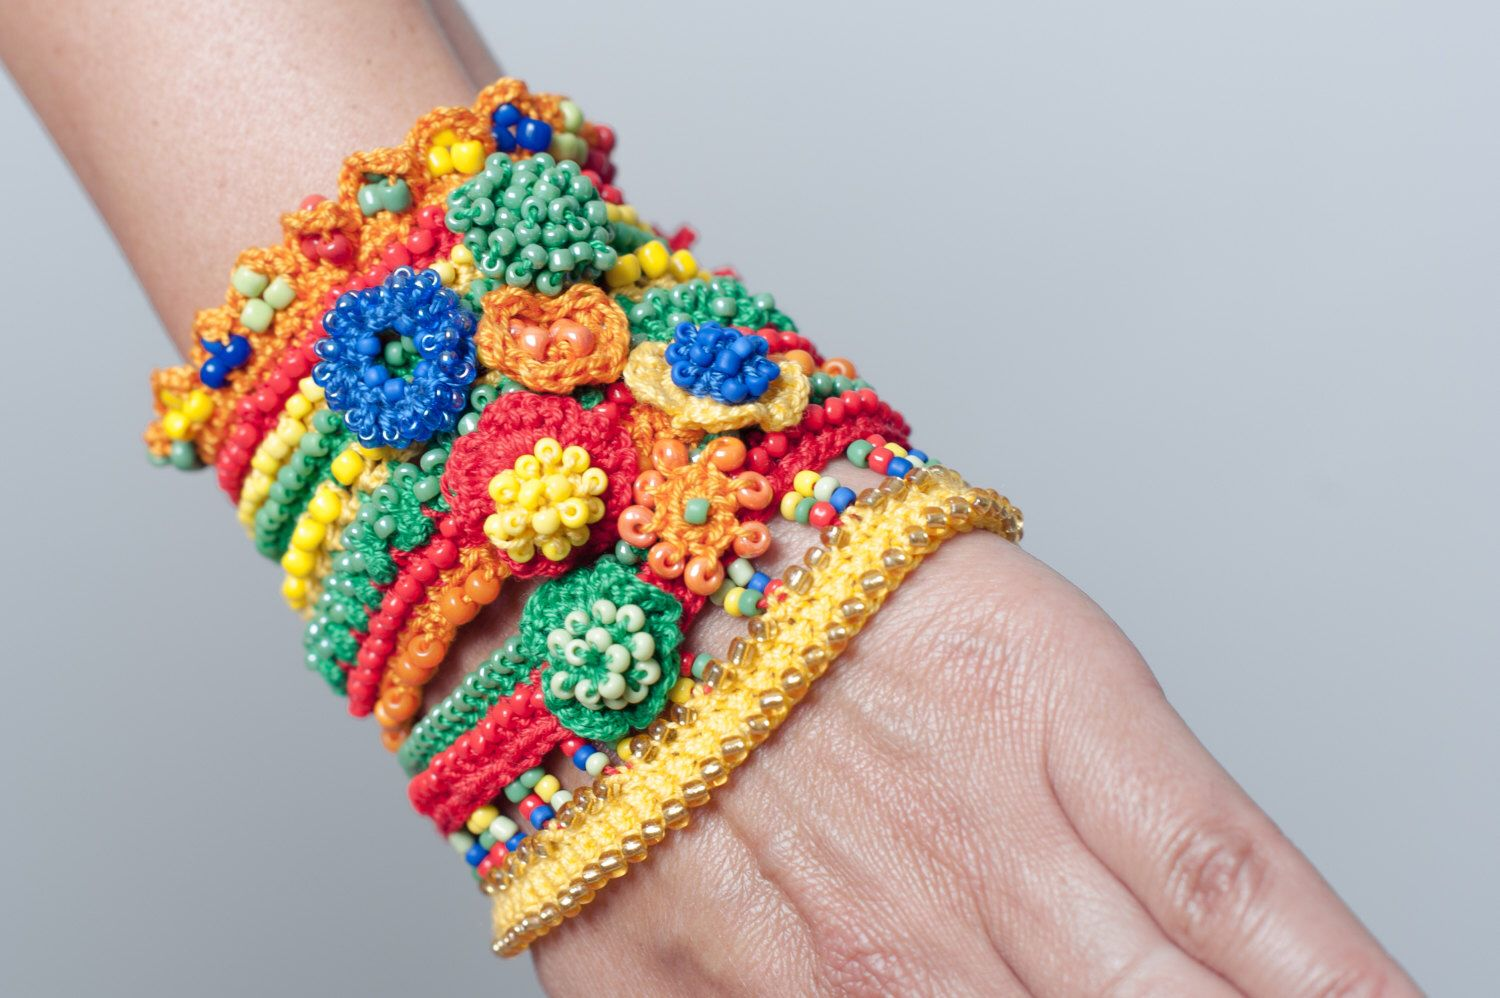 Colorful Crochet Cuff In Orange Red Green Blue Yellow With Beads by SvetlanaCrochet on Etsy https://www.etsy.com/listing/235347822/colorful-crochet-cuff-in-orange-red